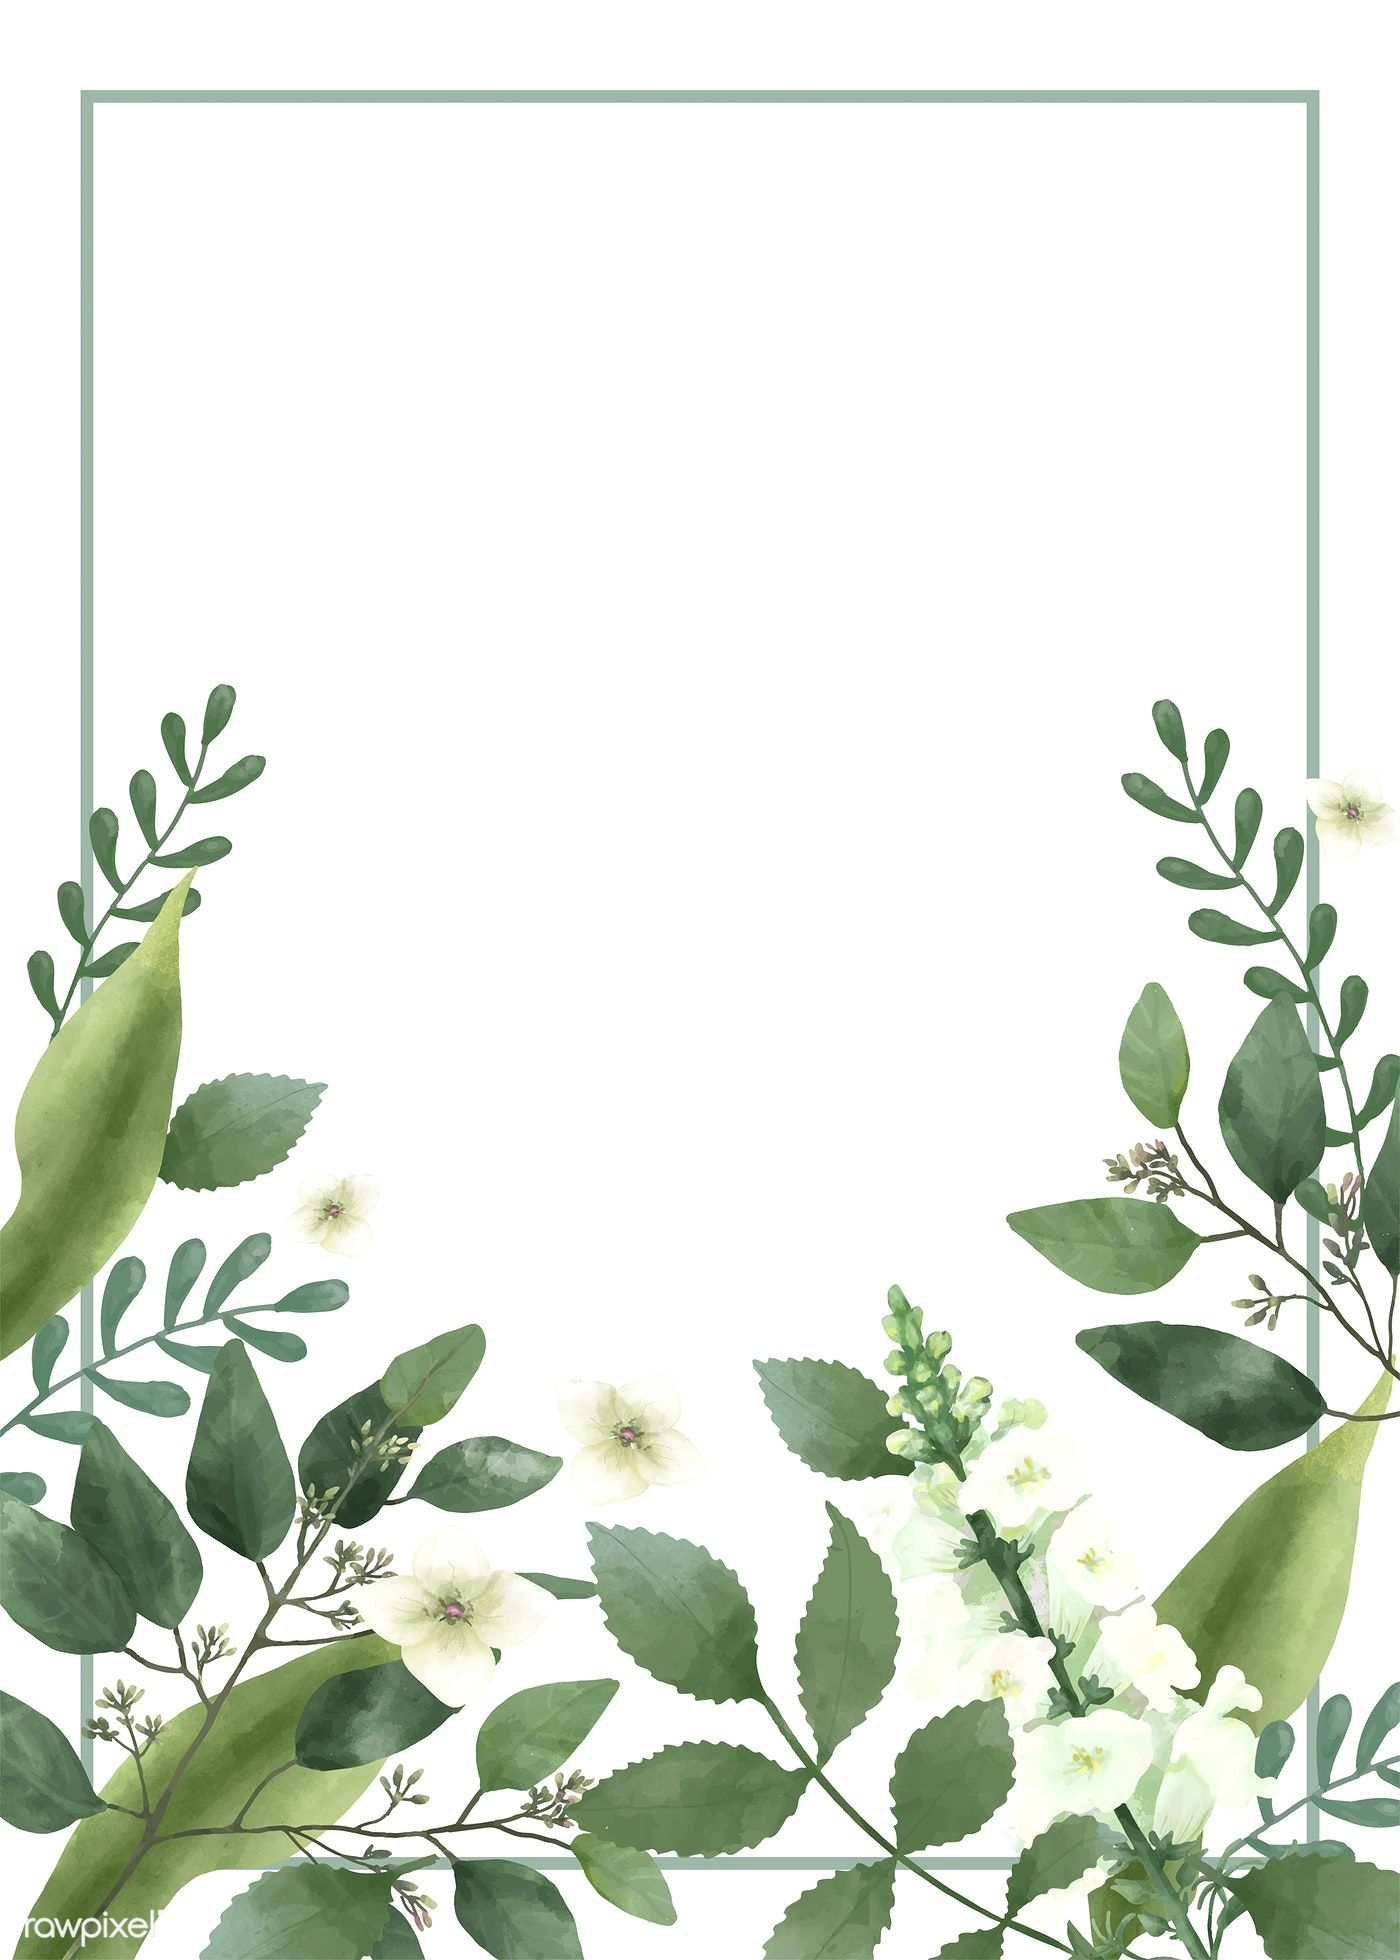 Invitation Card With A Green Theme Free Image By Rawpixel Com